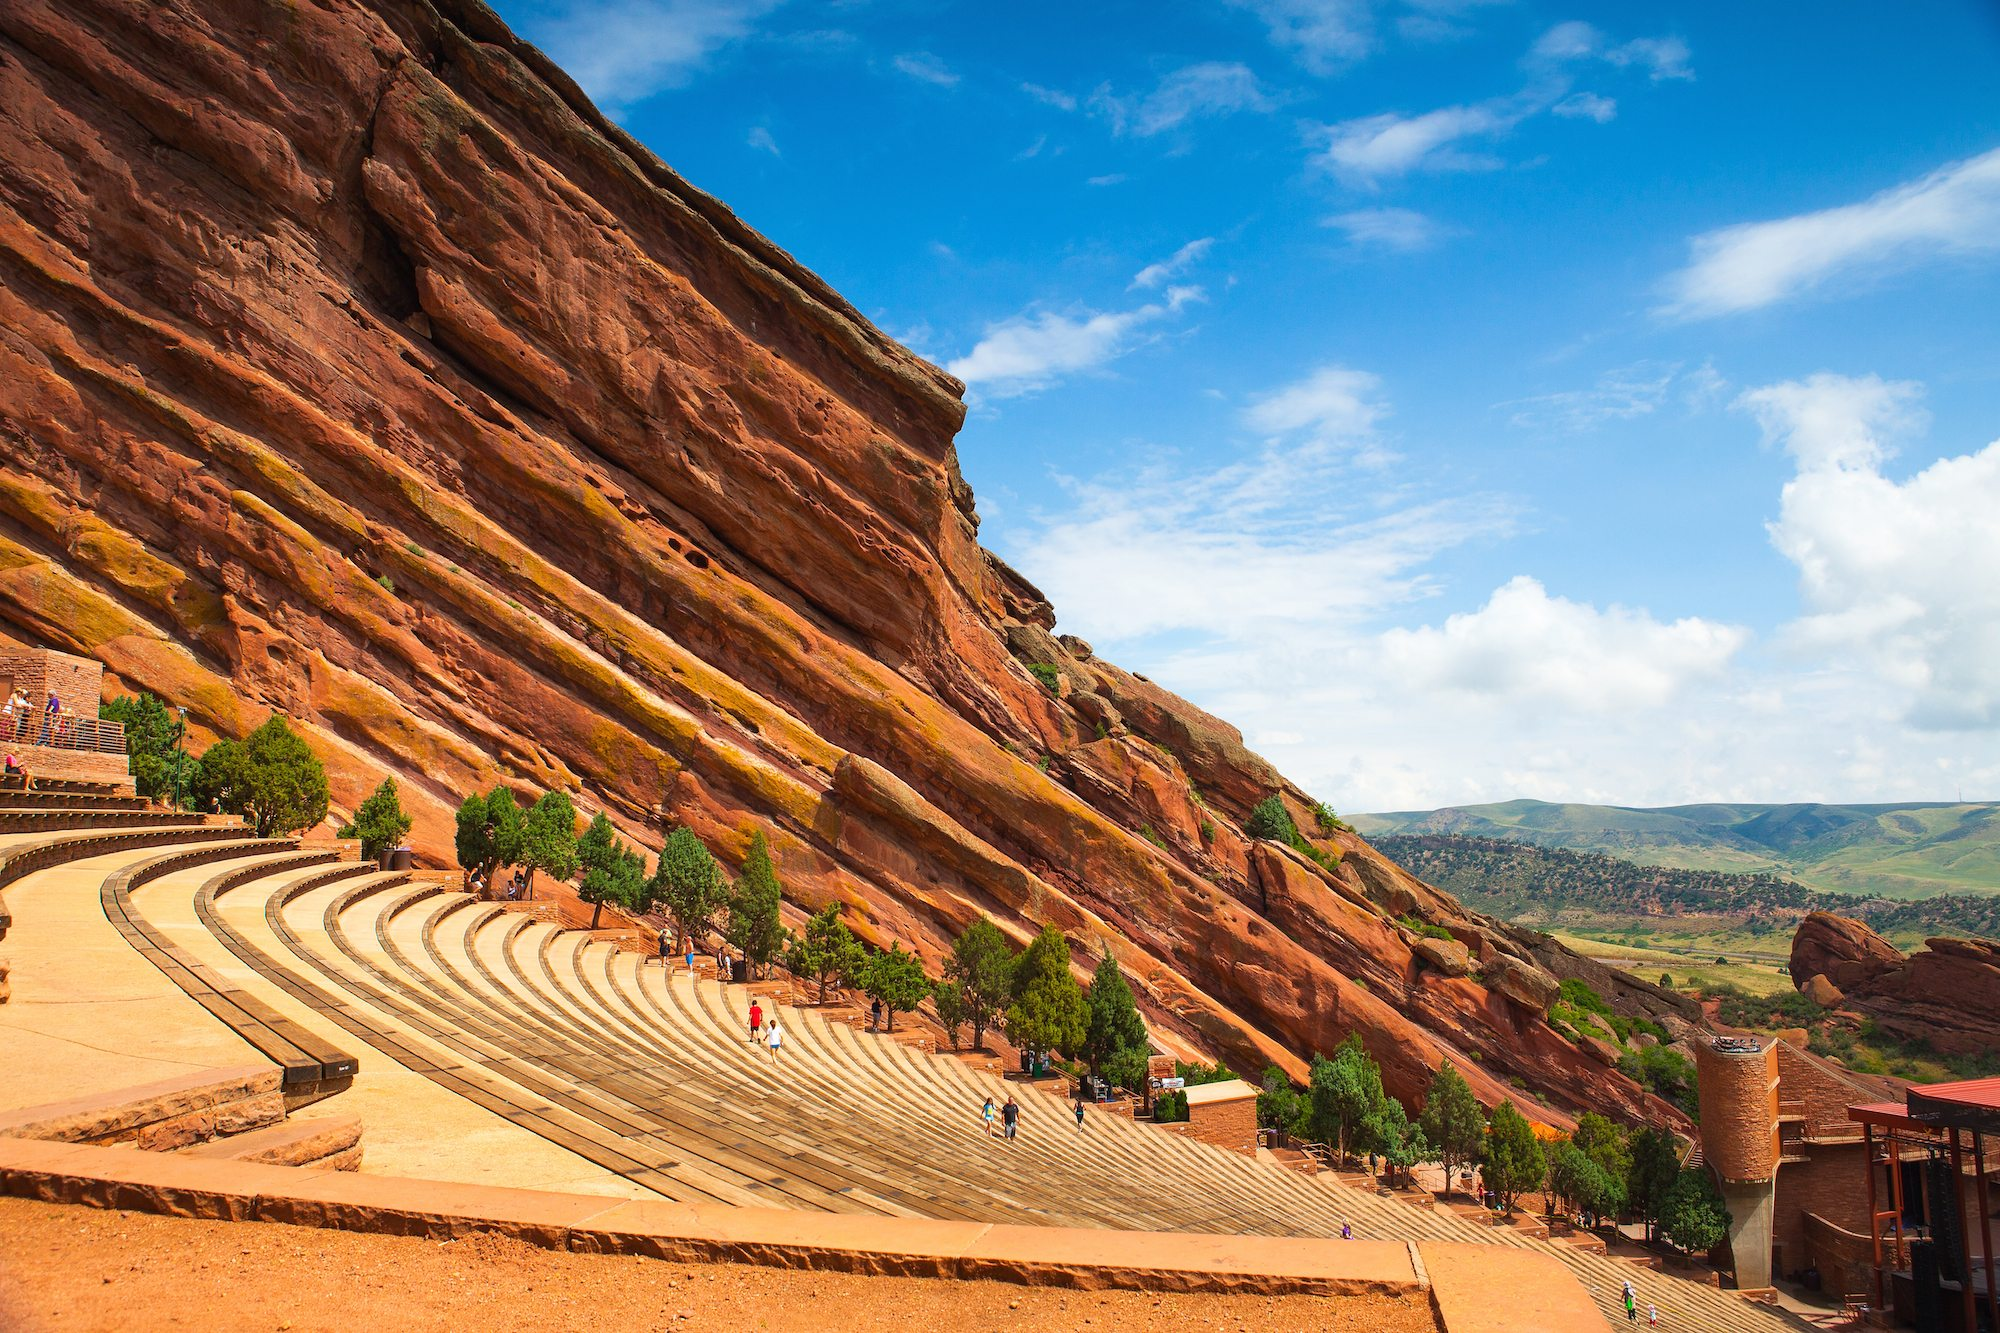 Visit Red Rocks Amphitheater